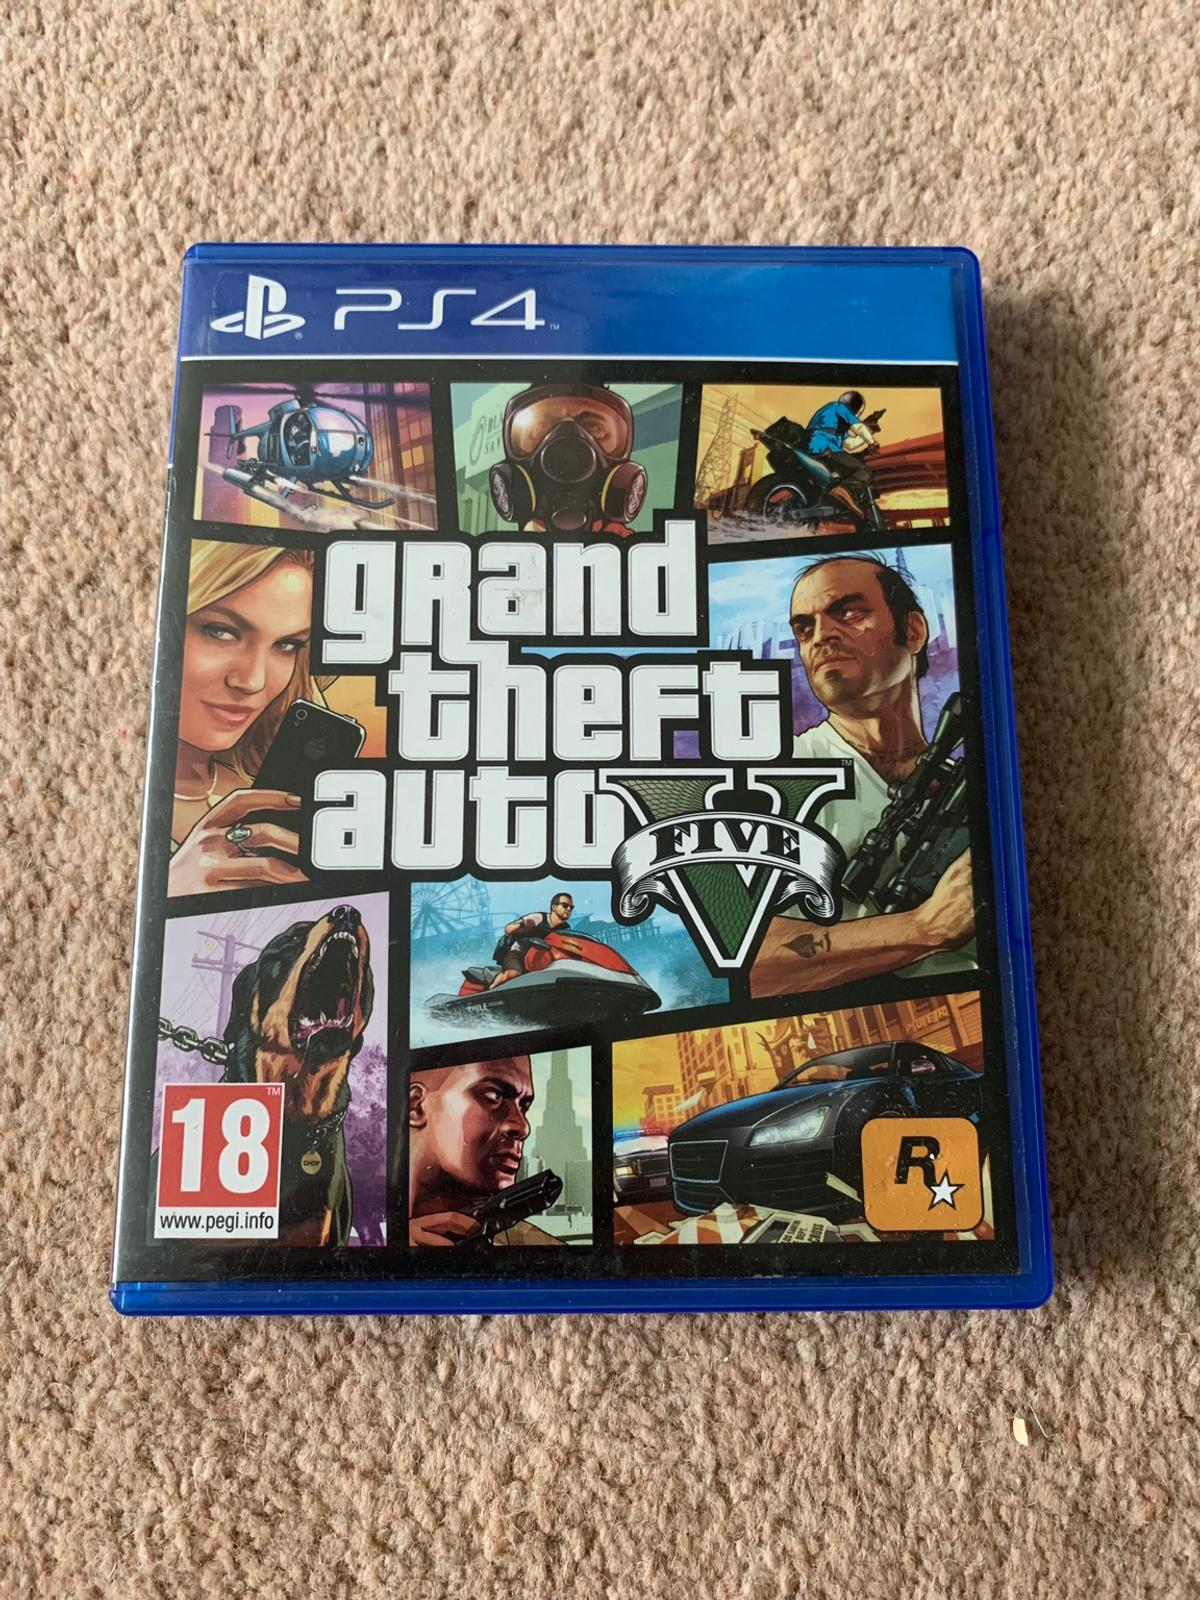 Played few times, fantastic game.  Open to offers